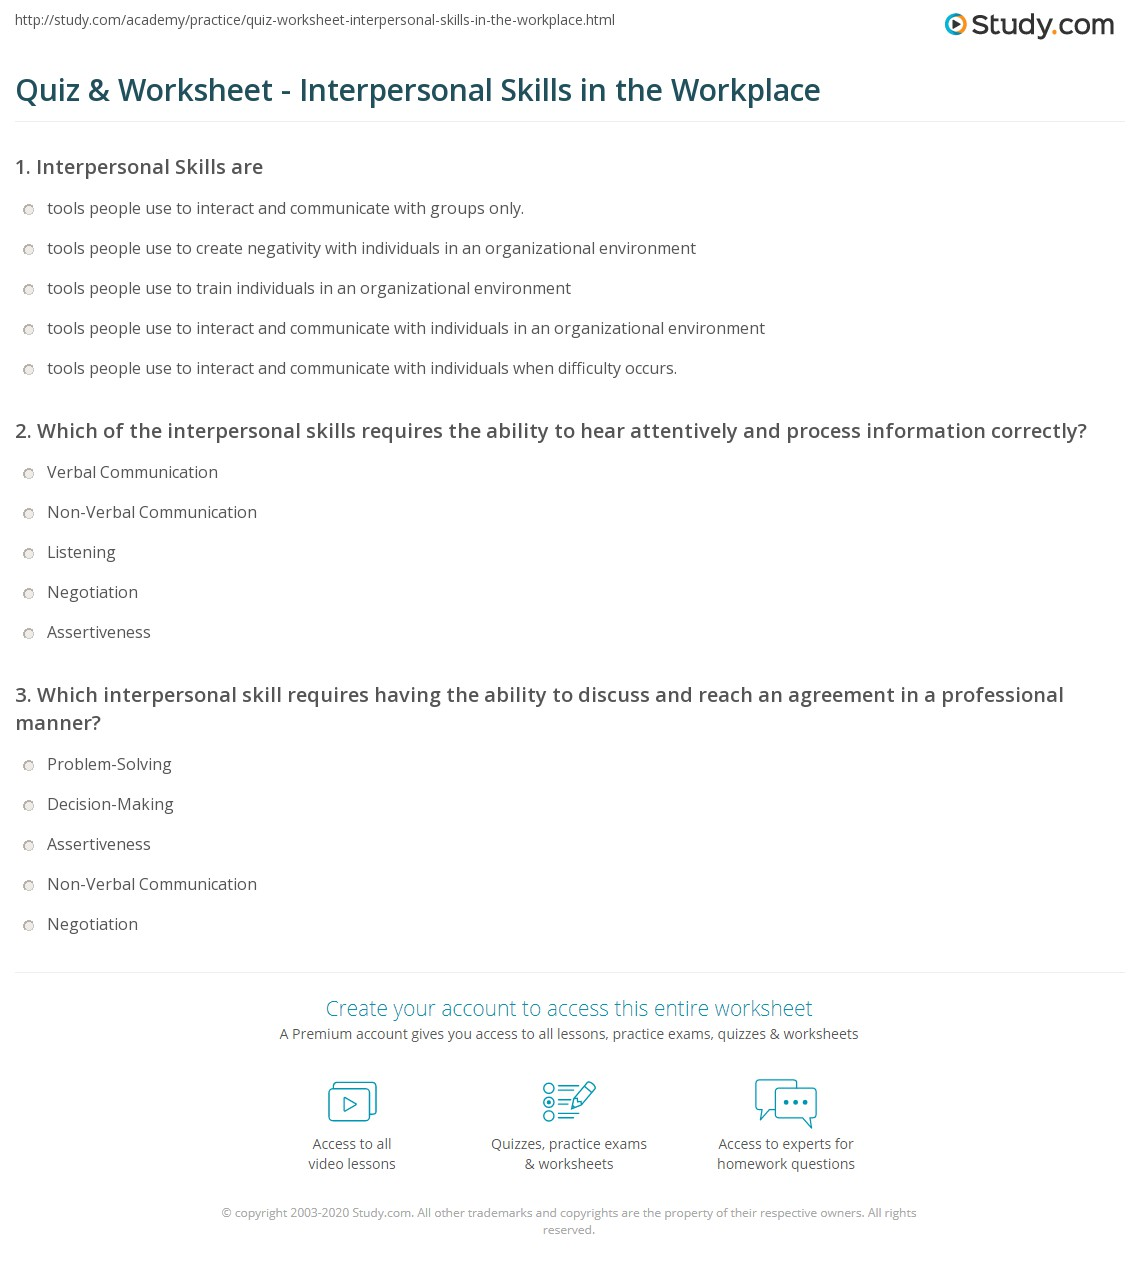 Quiz Worksheet Interpersonal Skills In The Workplace Study